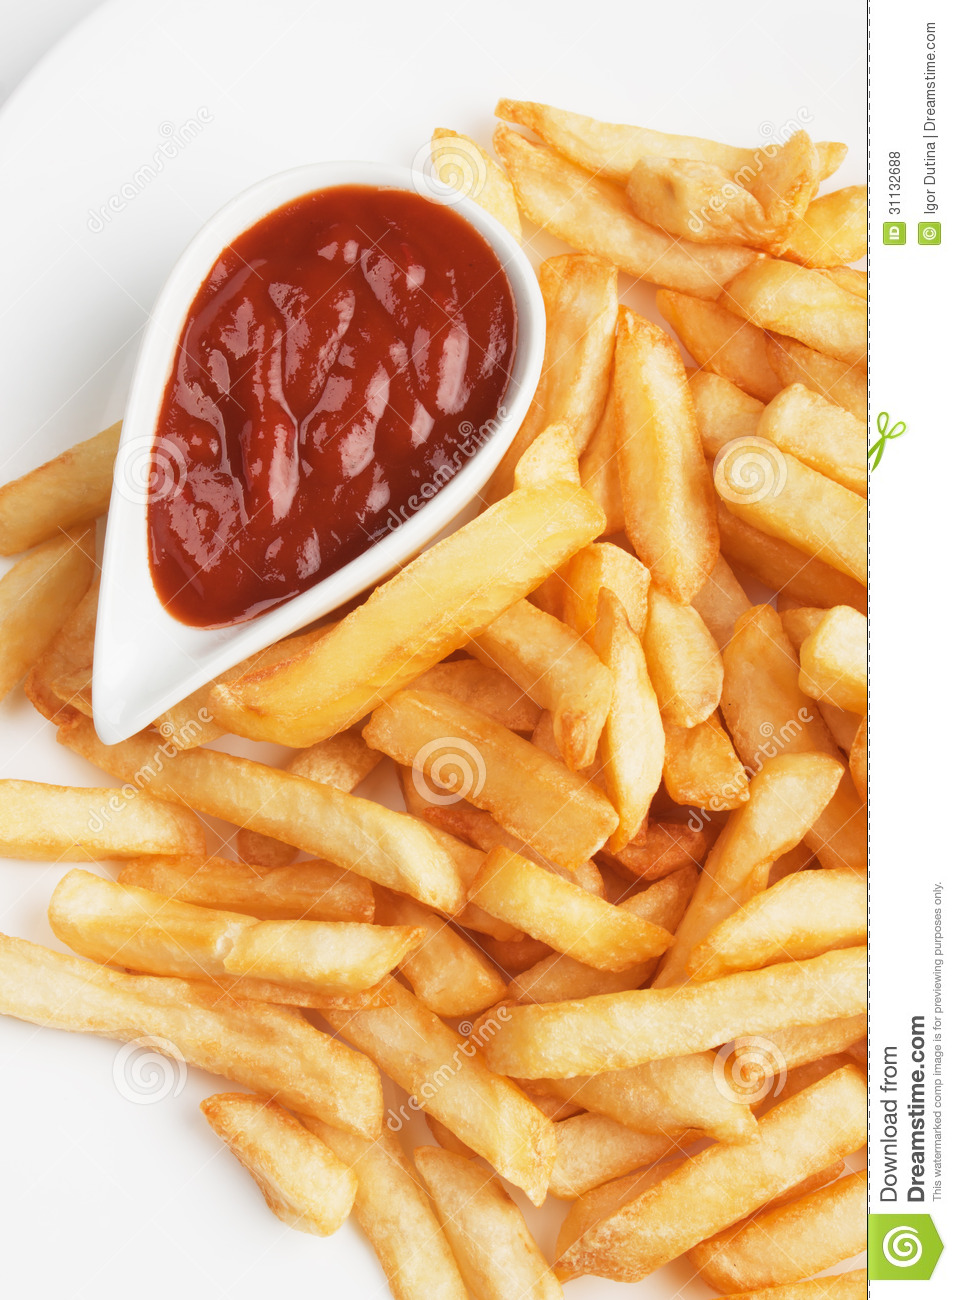 french fries with ketchup - photo #30